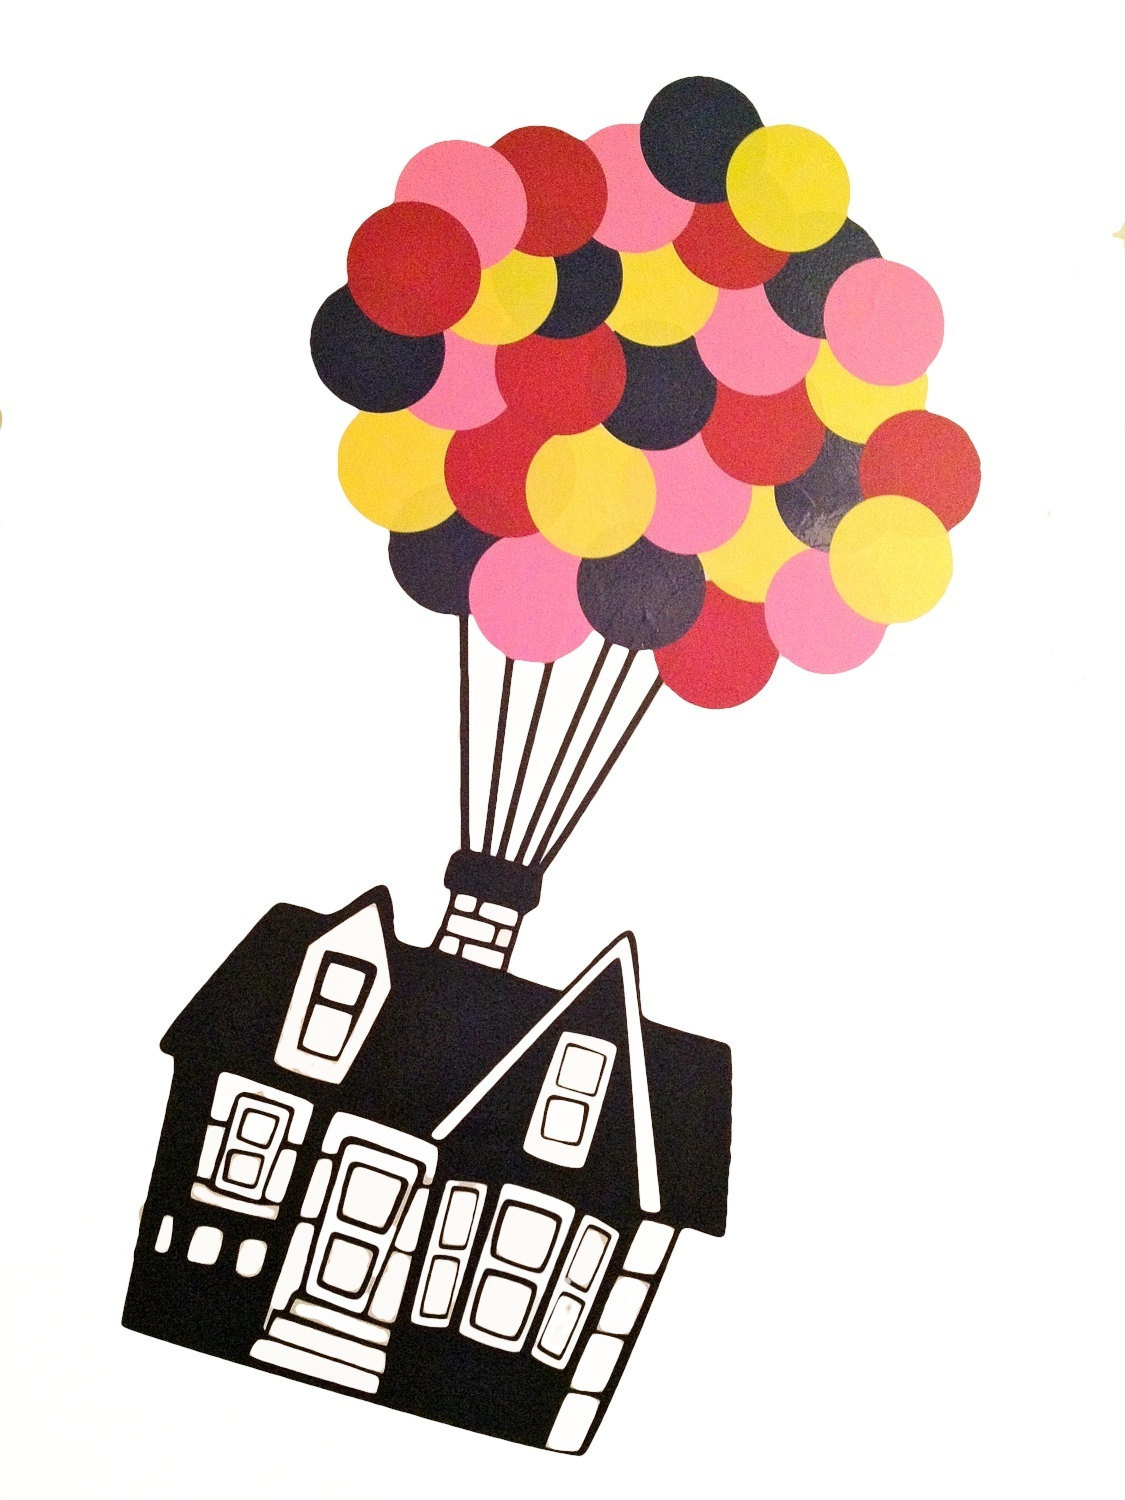 1125x1500 Up House Clipart Images